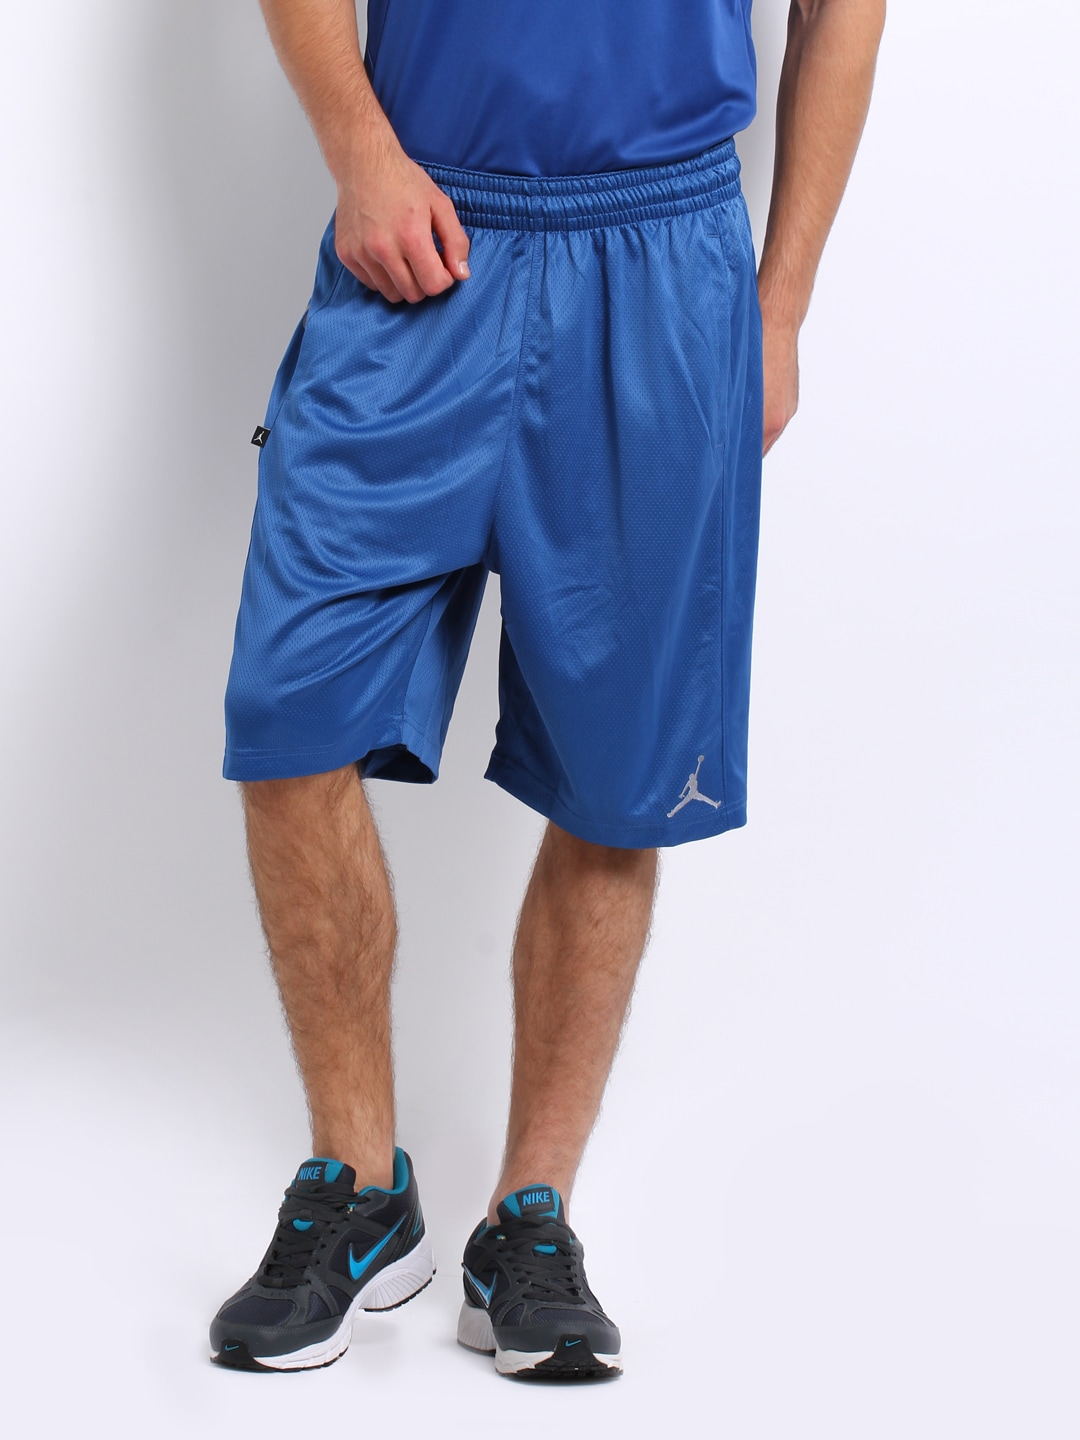 bc2bef831557 Nike 534820-434 Men Blue Air Jordan Bright Light Basketball Shorts ...